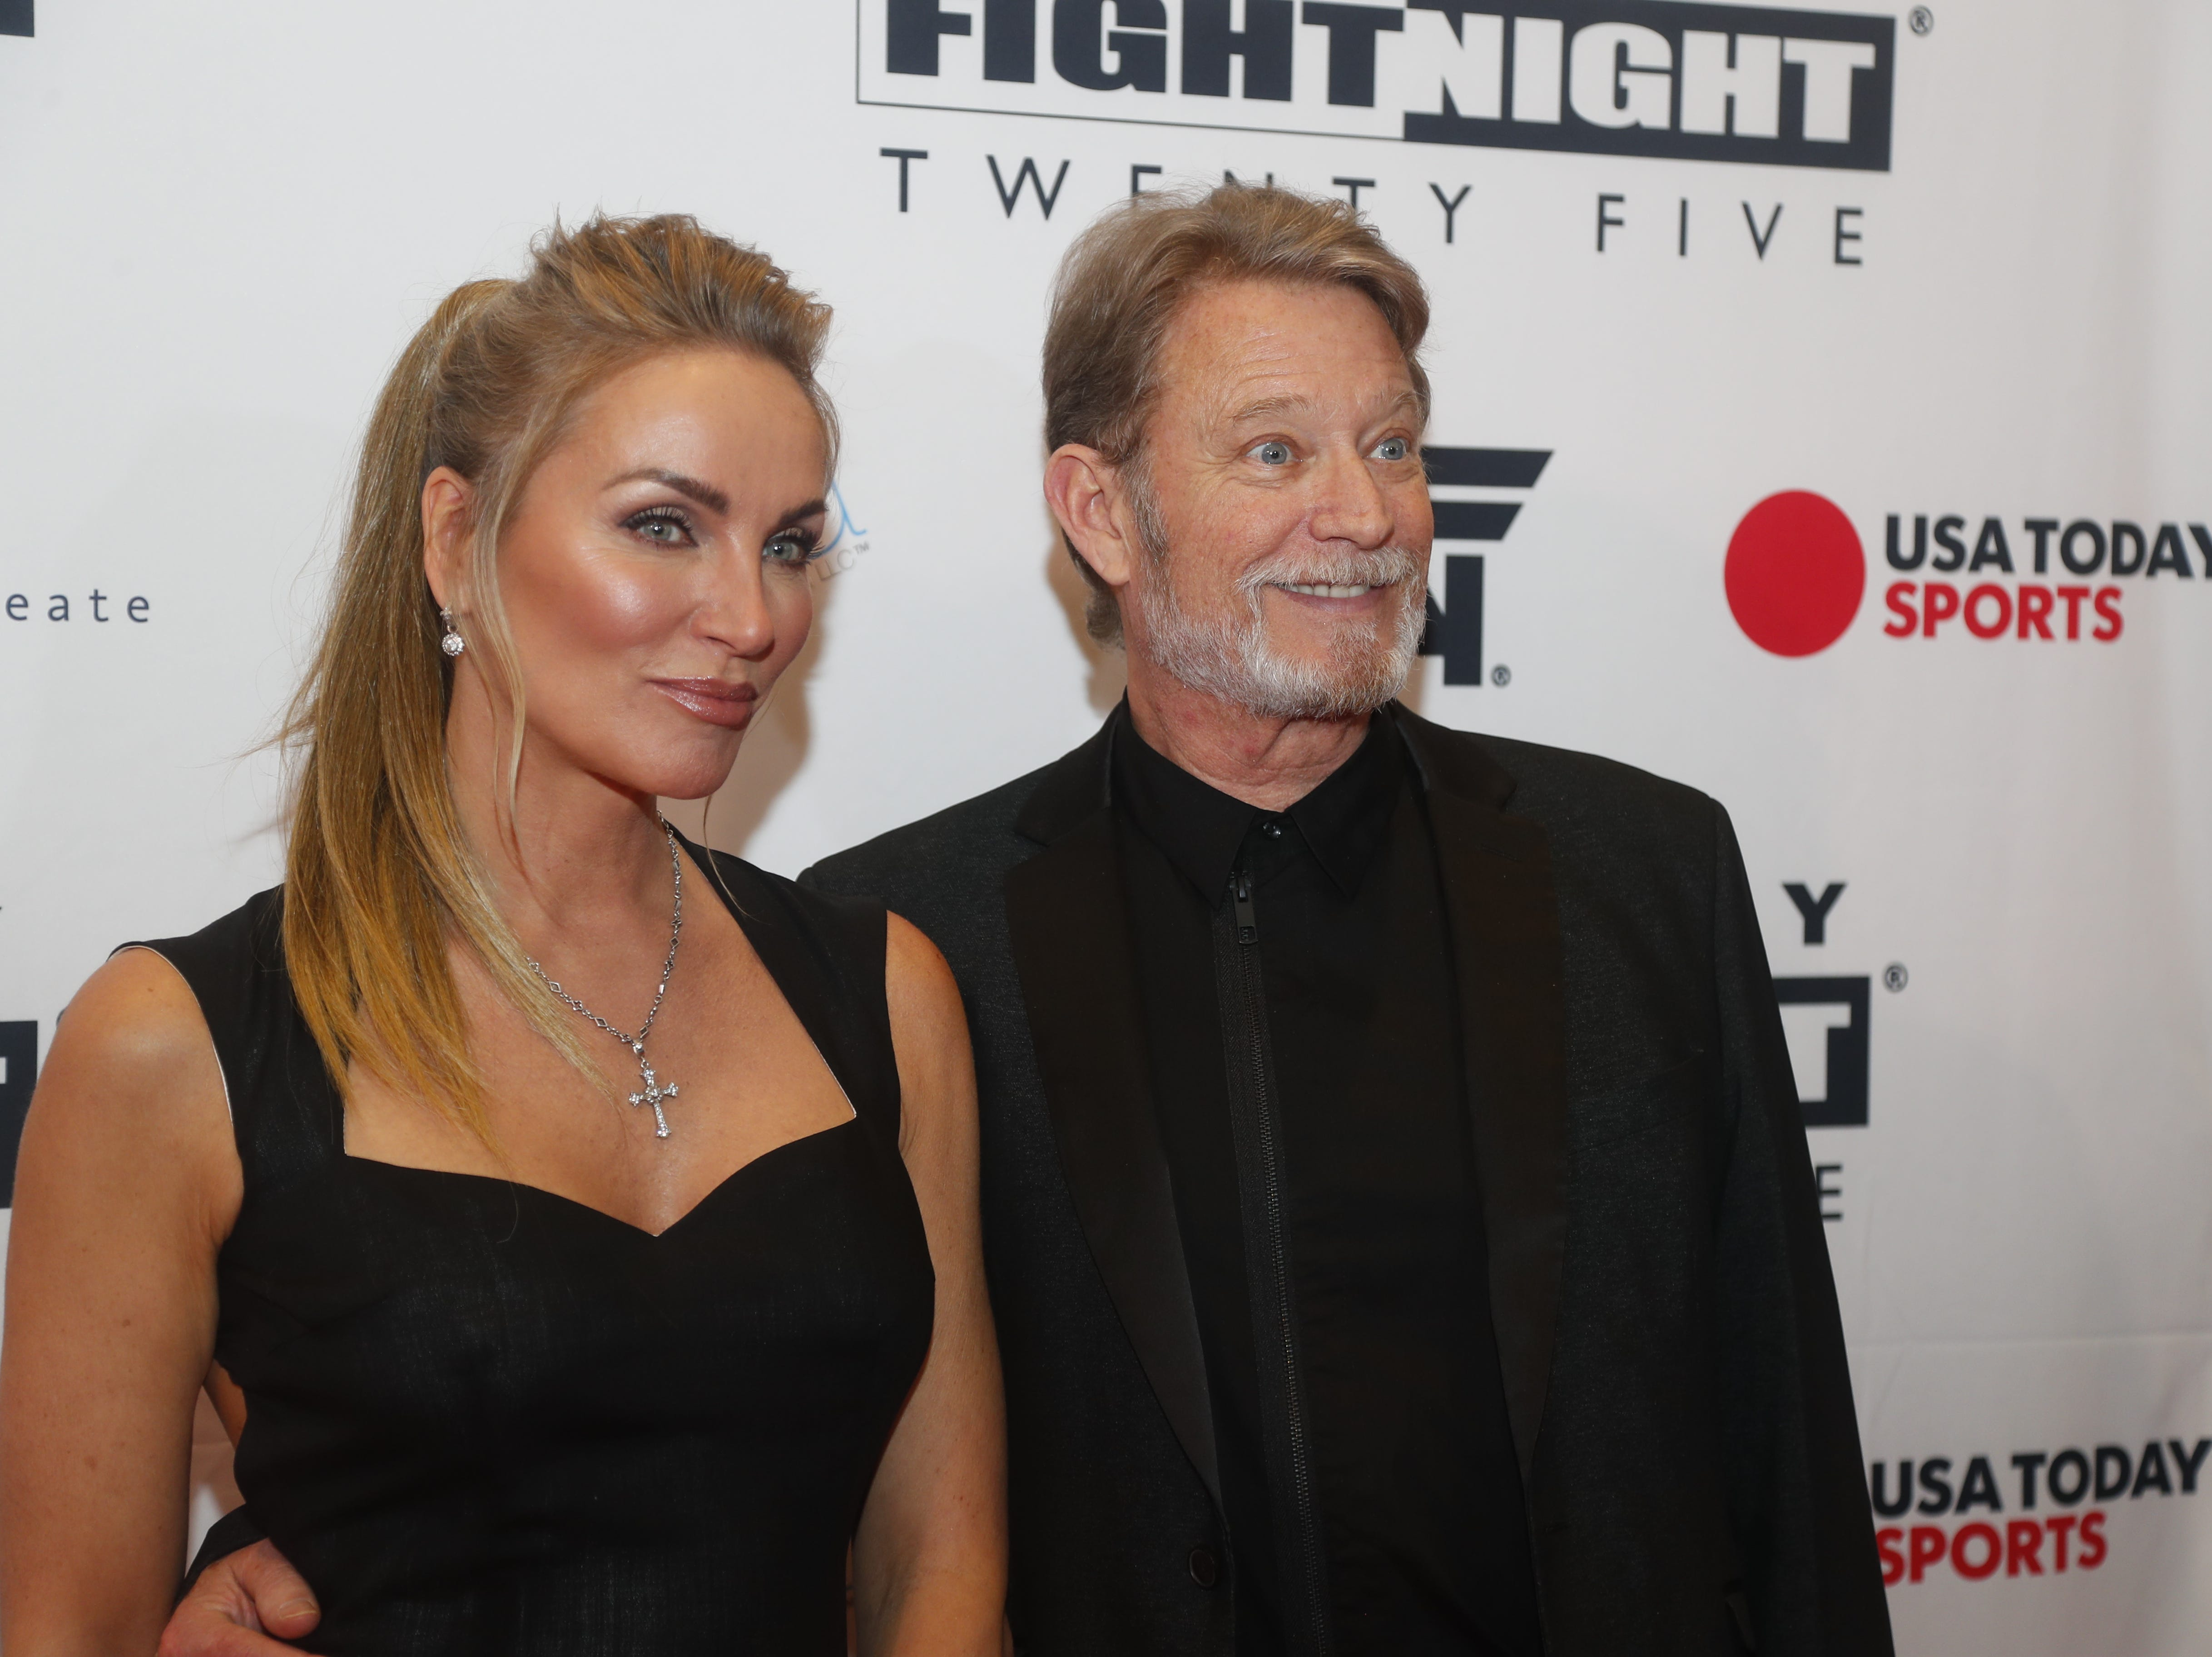 Chris Rich poses for pictures during the Celebrity Fight Night red carpet in Scottsdale, Ariz., on March 23, 2019.